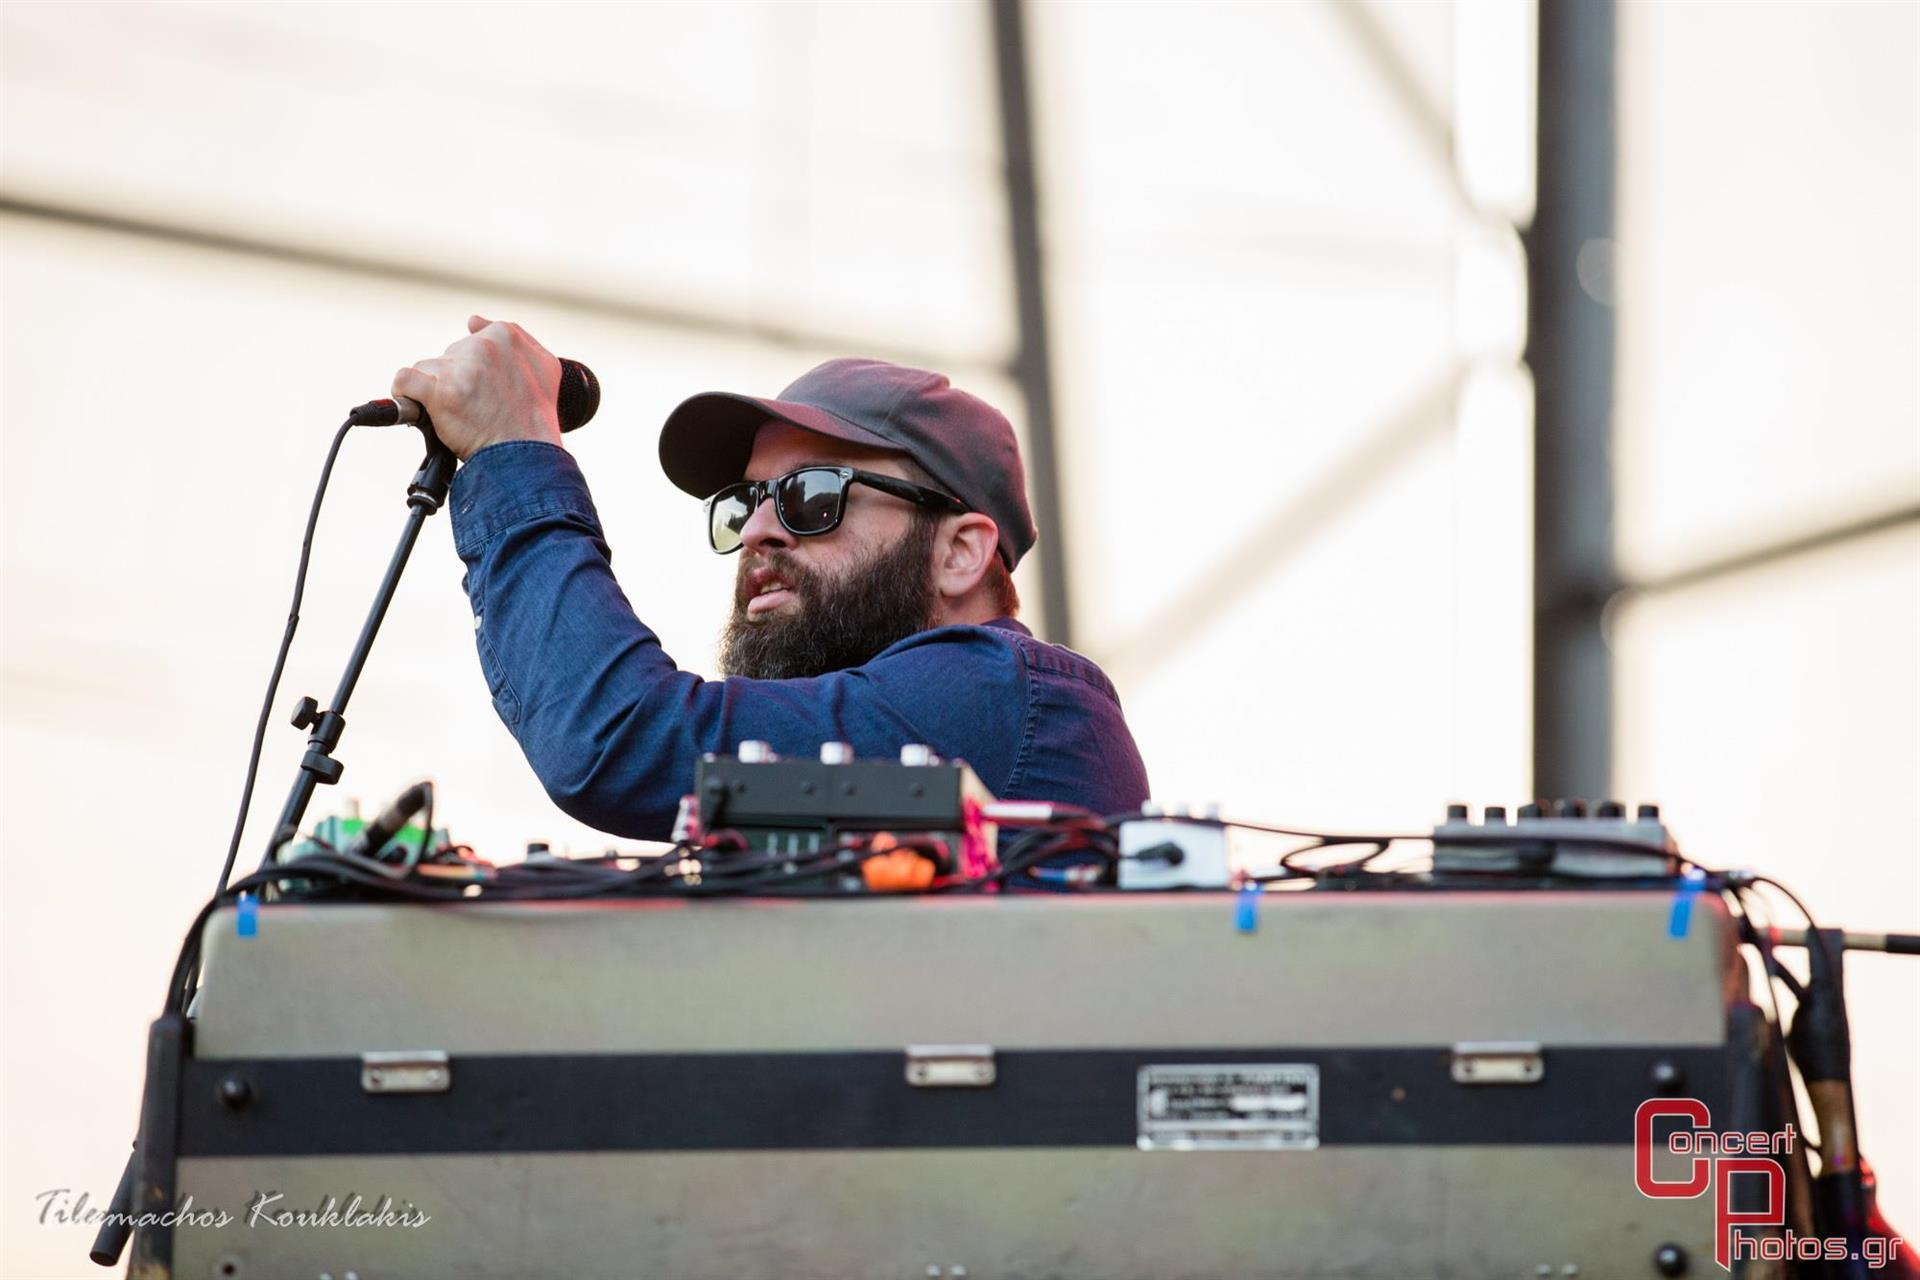 Rockwave 2015 - Black Keys-Black Angels-1000mods-The Big Nose Attack-Puta Volcano-Rockwave 2015 - Black Keys-Black Angels-1000mods photographer:  - 04A_Black Angels_02